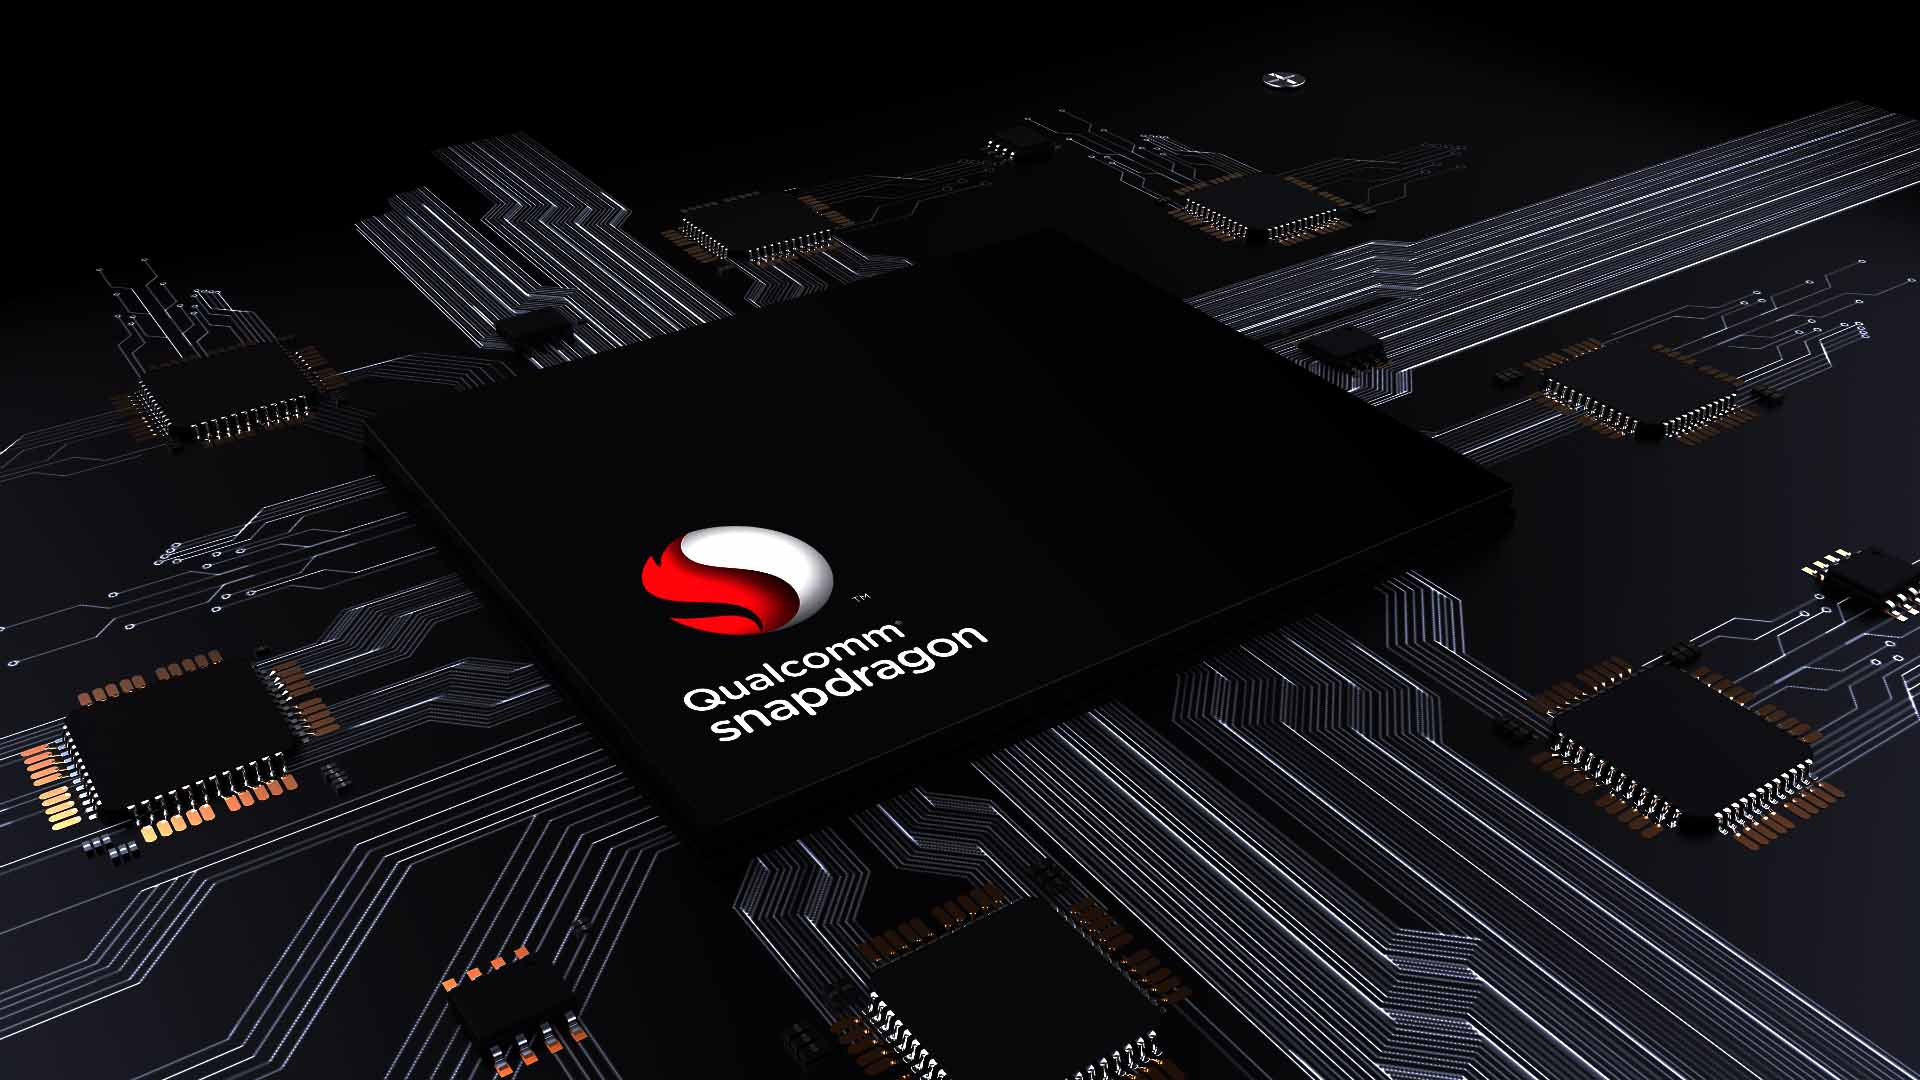 Qualcomm 7nm SoC to be ready this year for 5G hotspots